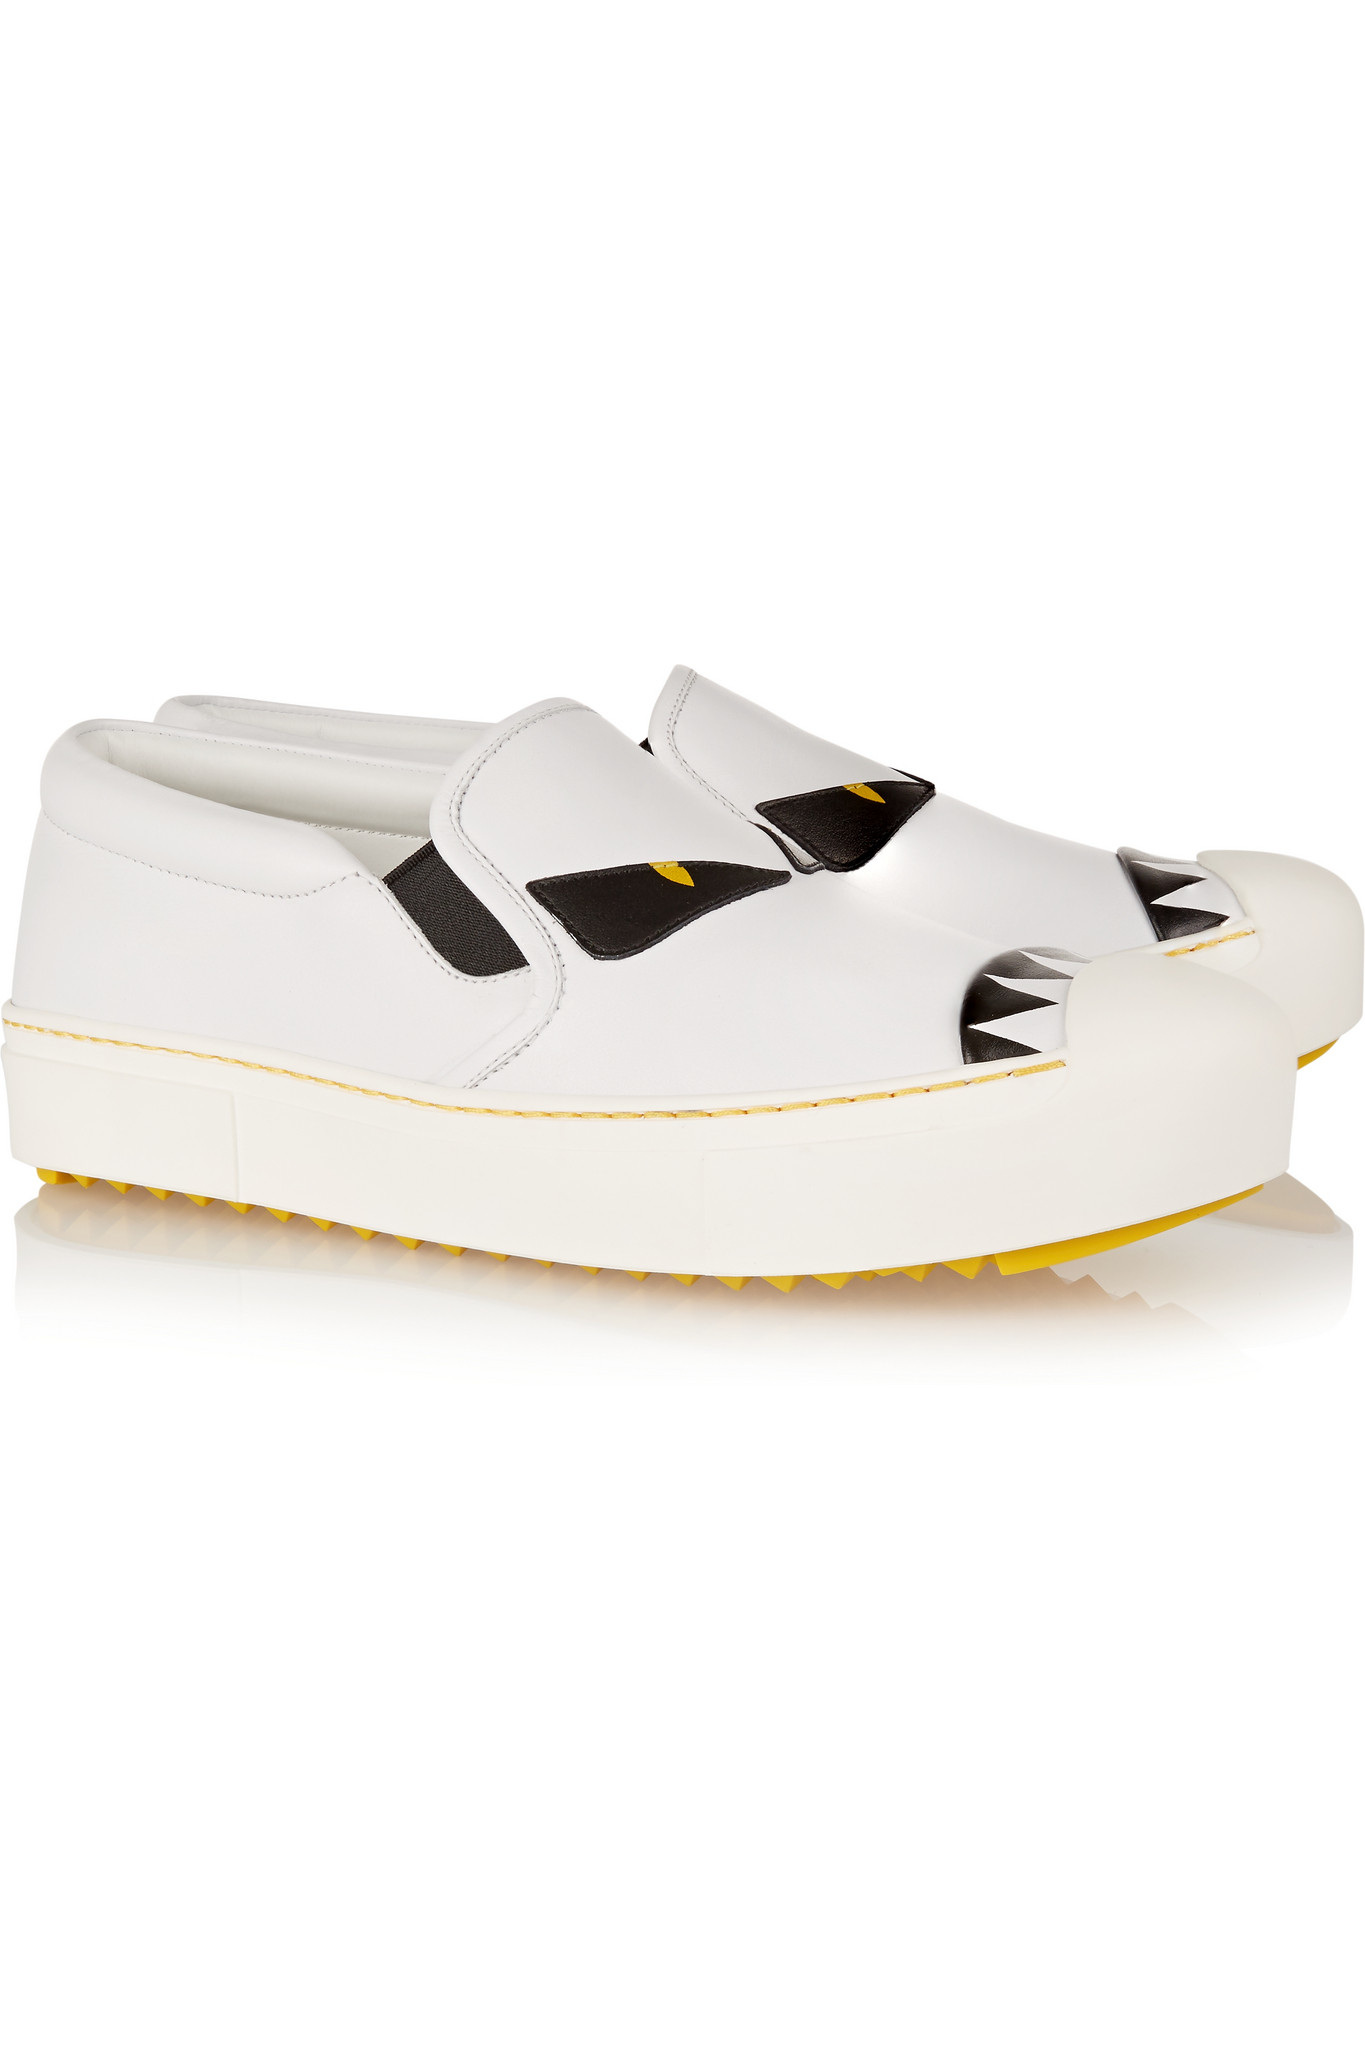 8ee307122a2f Fendi Bag Bug Leather Slip-on Sneakers in White - Lyst